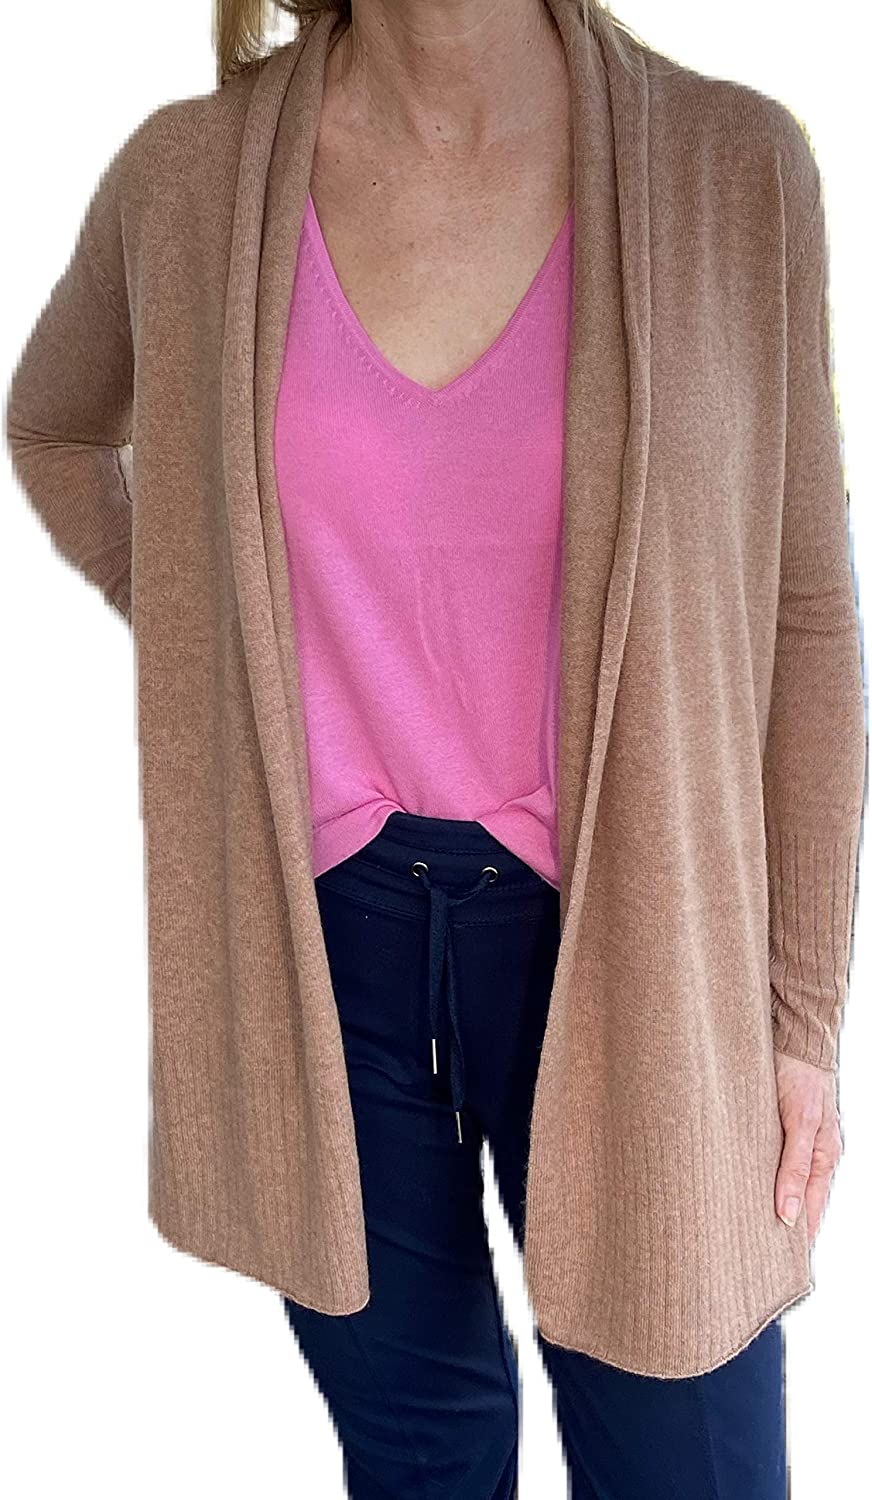 Women's 100% 2-ply Cashmere Open Front Cardigan Sweater Beige